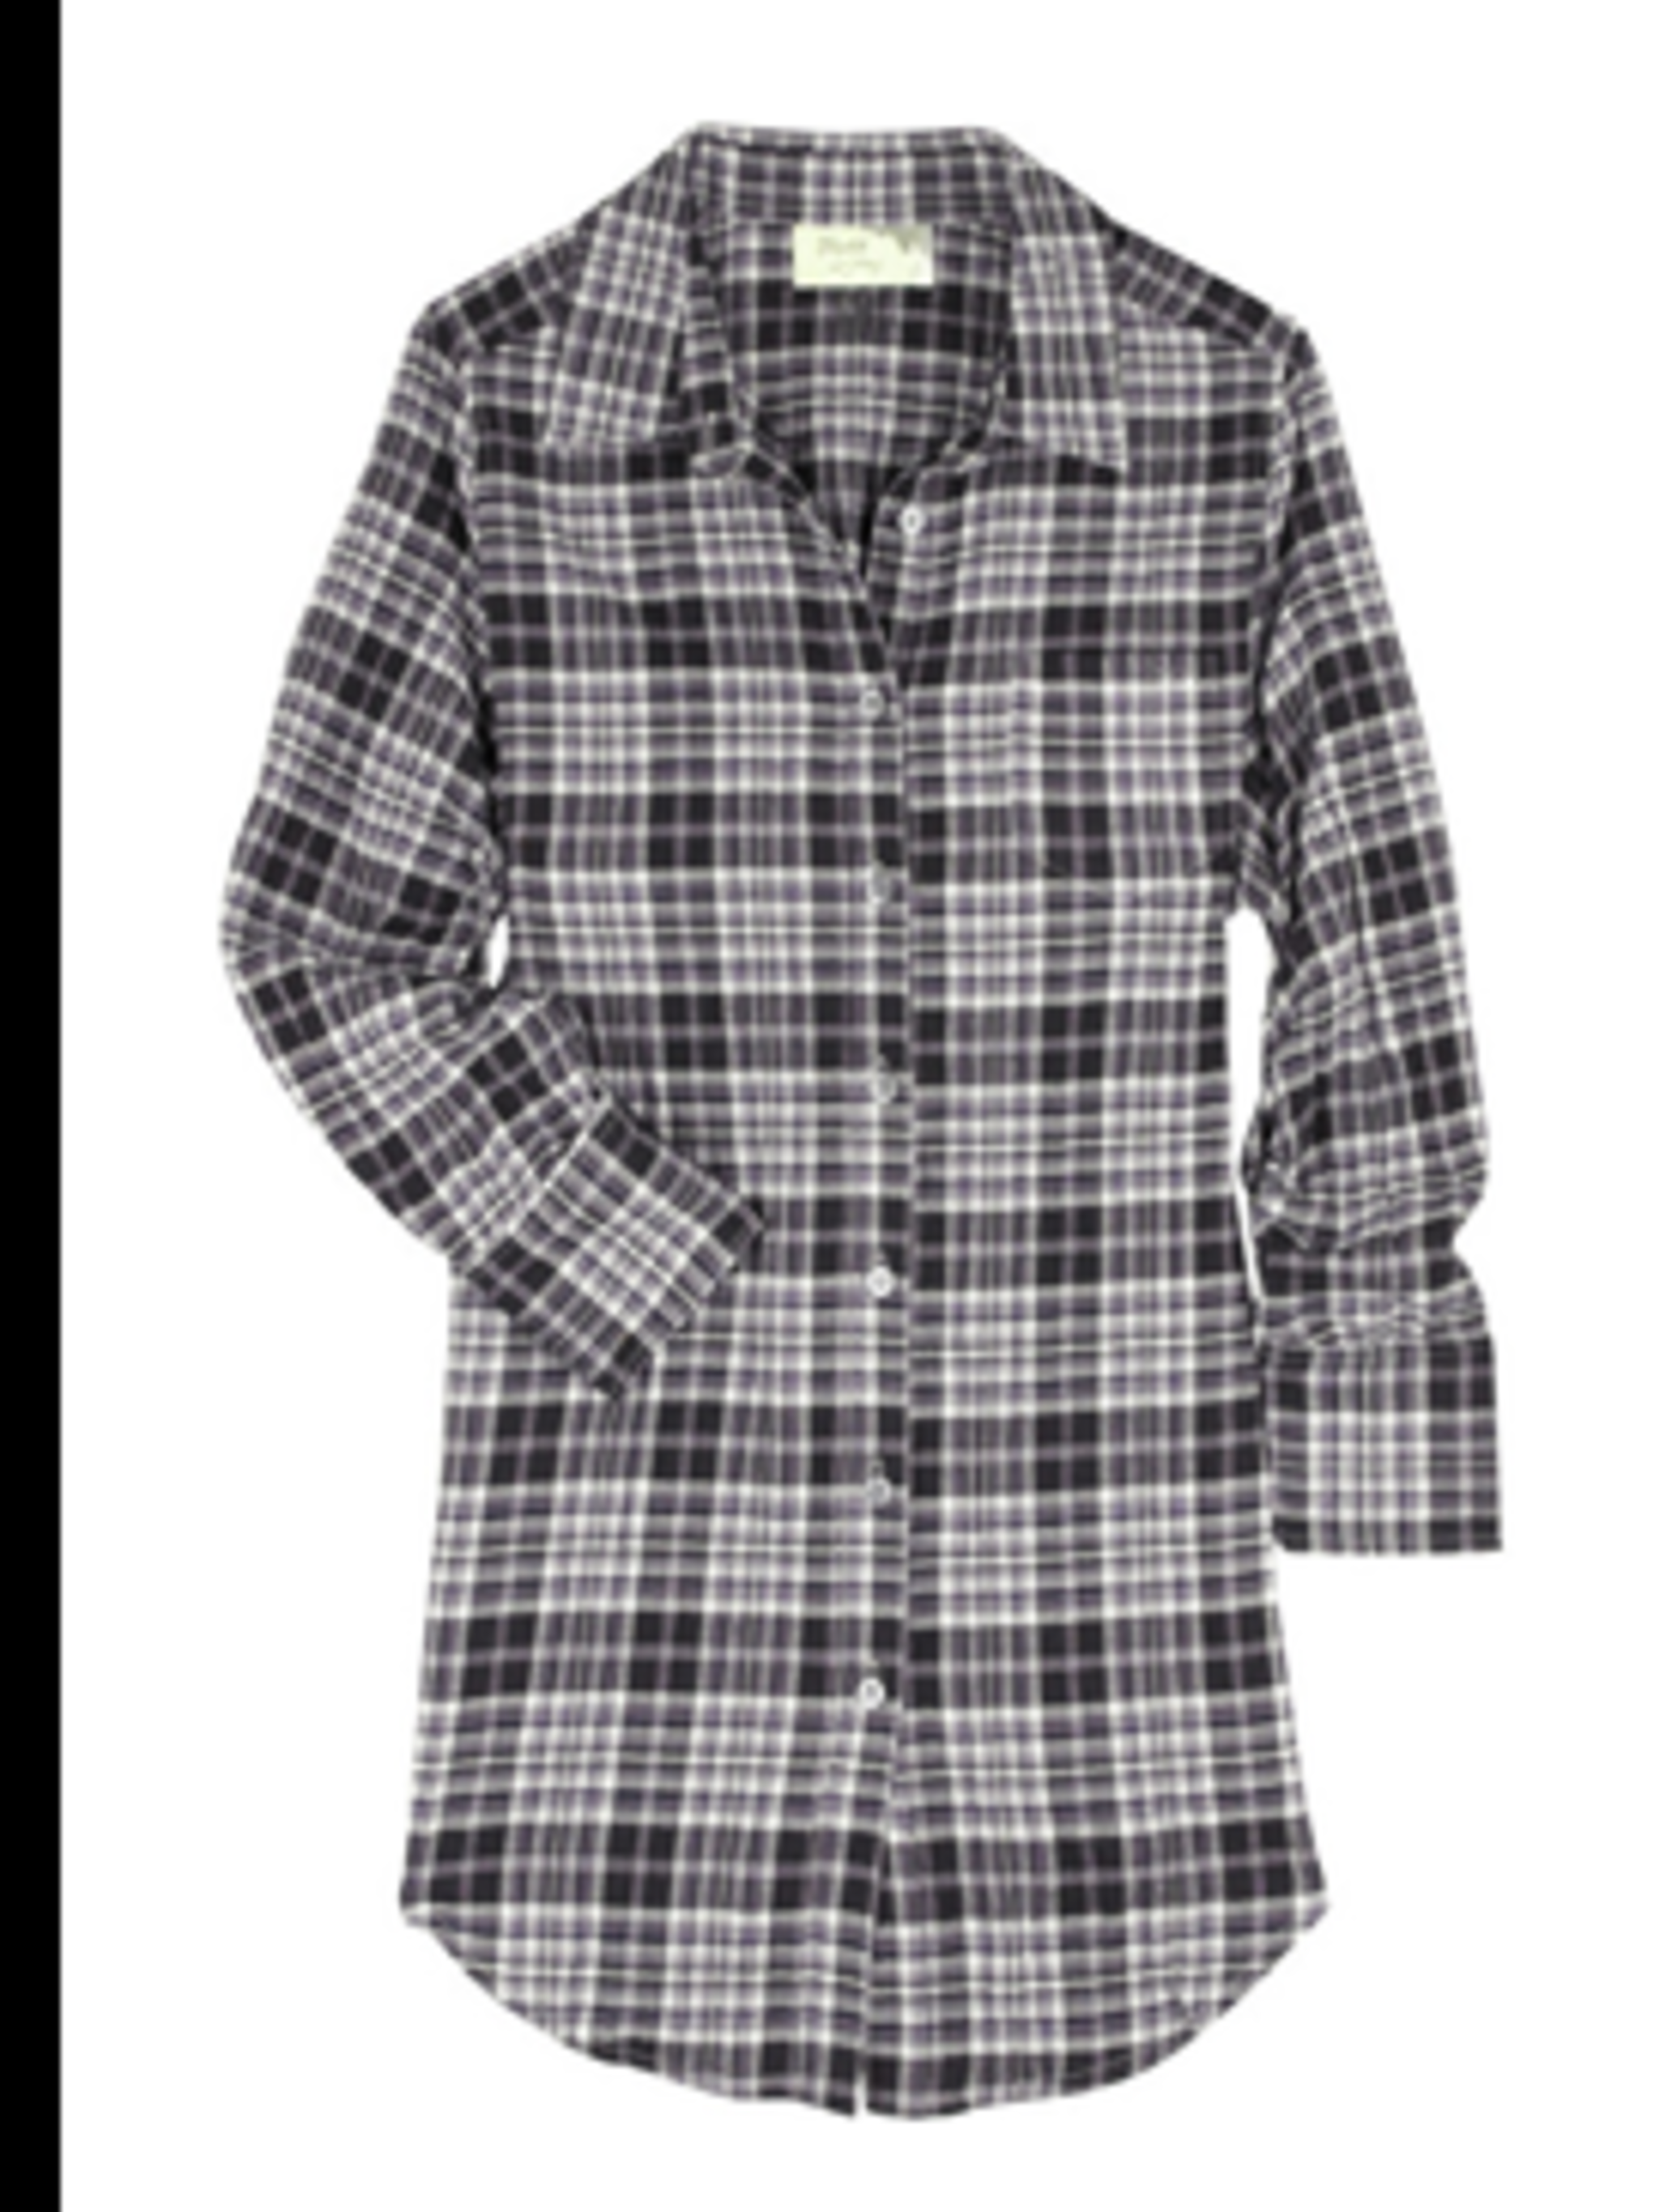 "<p> Shirt, £165 by Elizabeth and James at <a href=""http://www.net-a-porter.com/product/36457"">Net-a-Porter</a></p>"